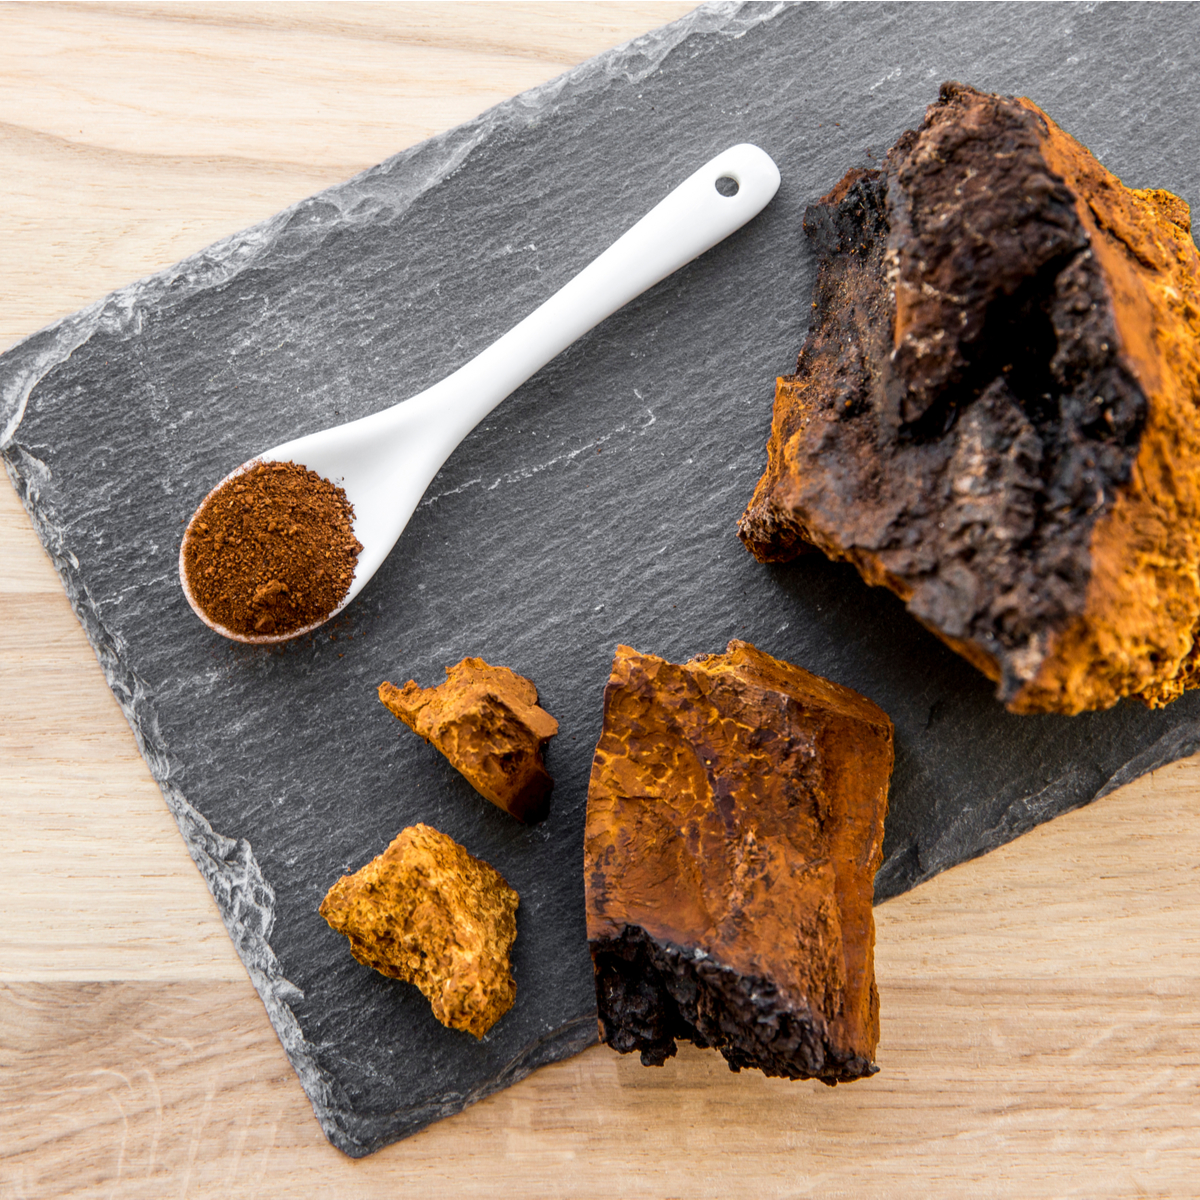 What Is Chaga, and What Does It Have To Do With Skincare?